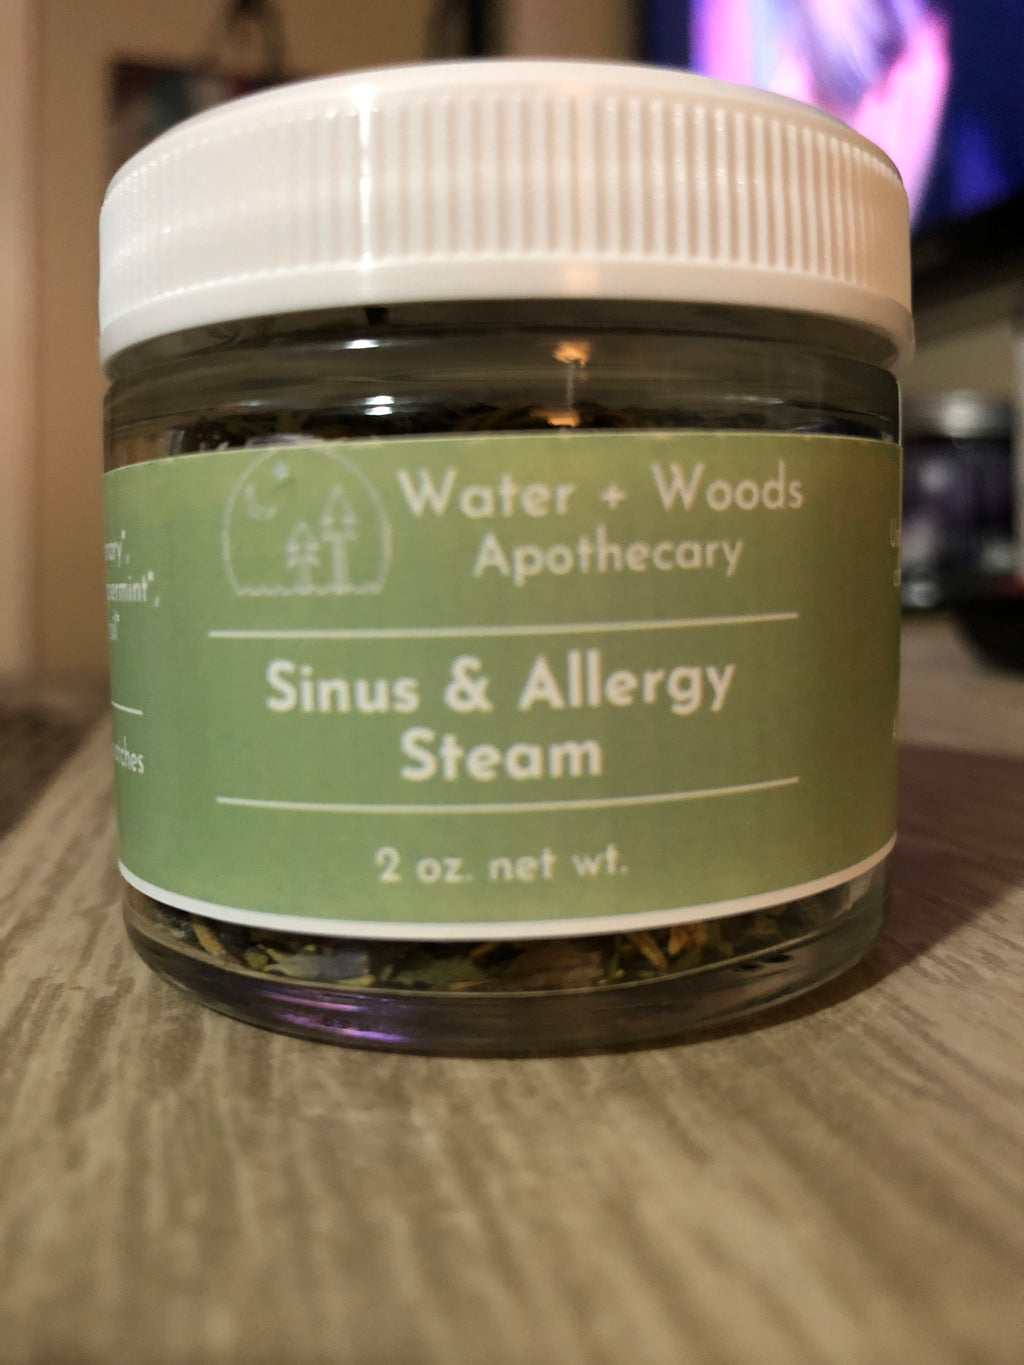 Sinus & Allergy Steam